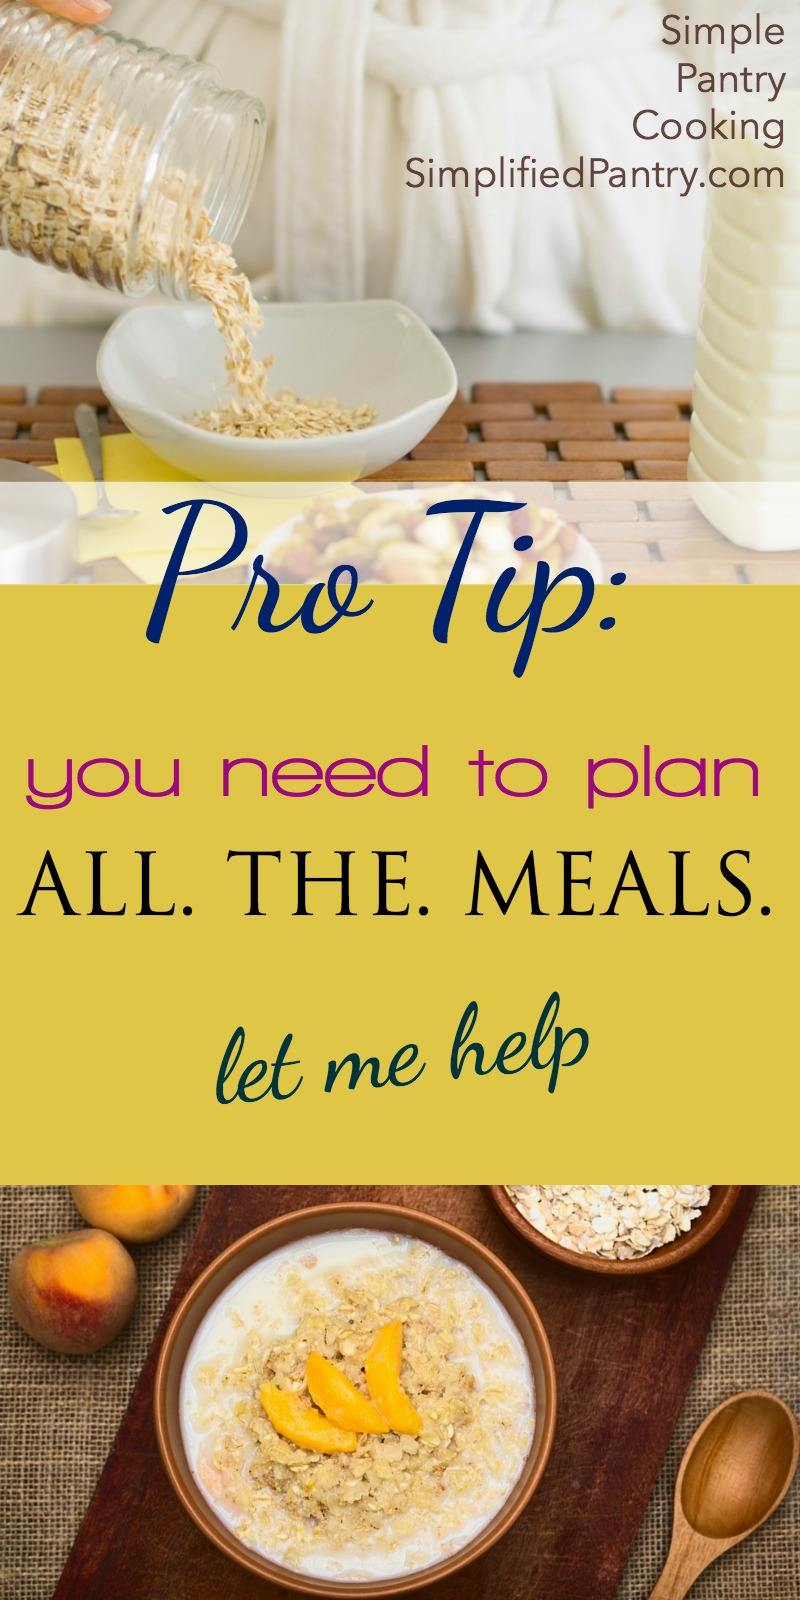 plan-all-the-meals